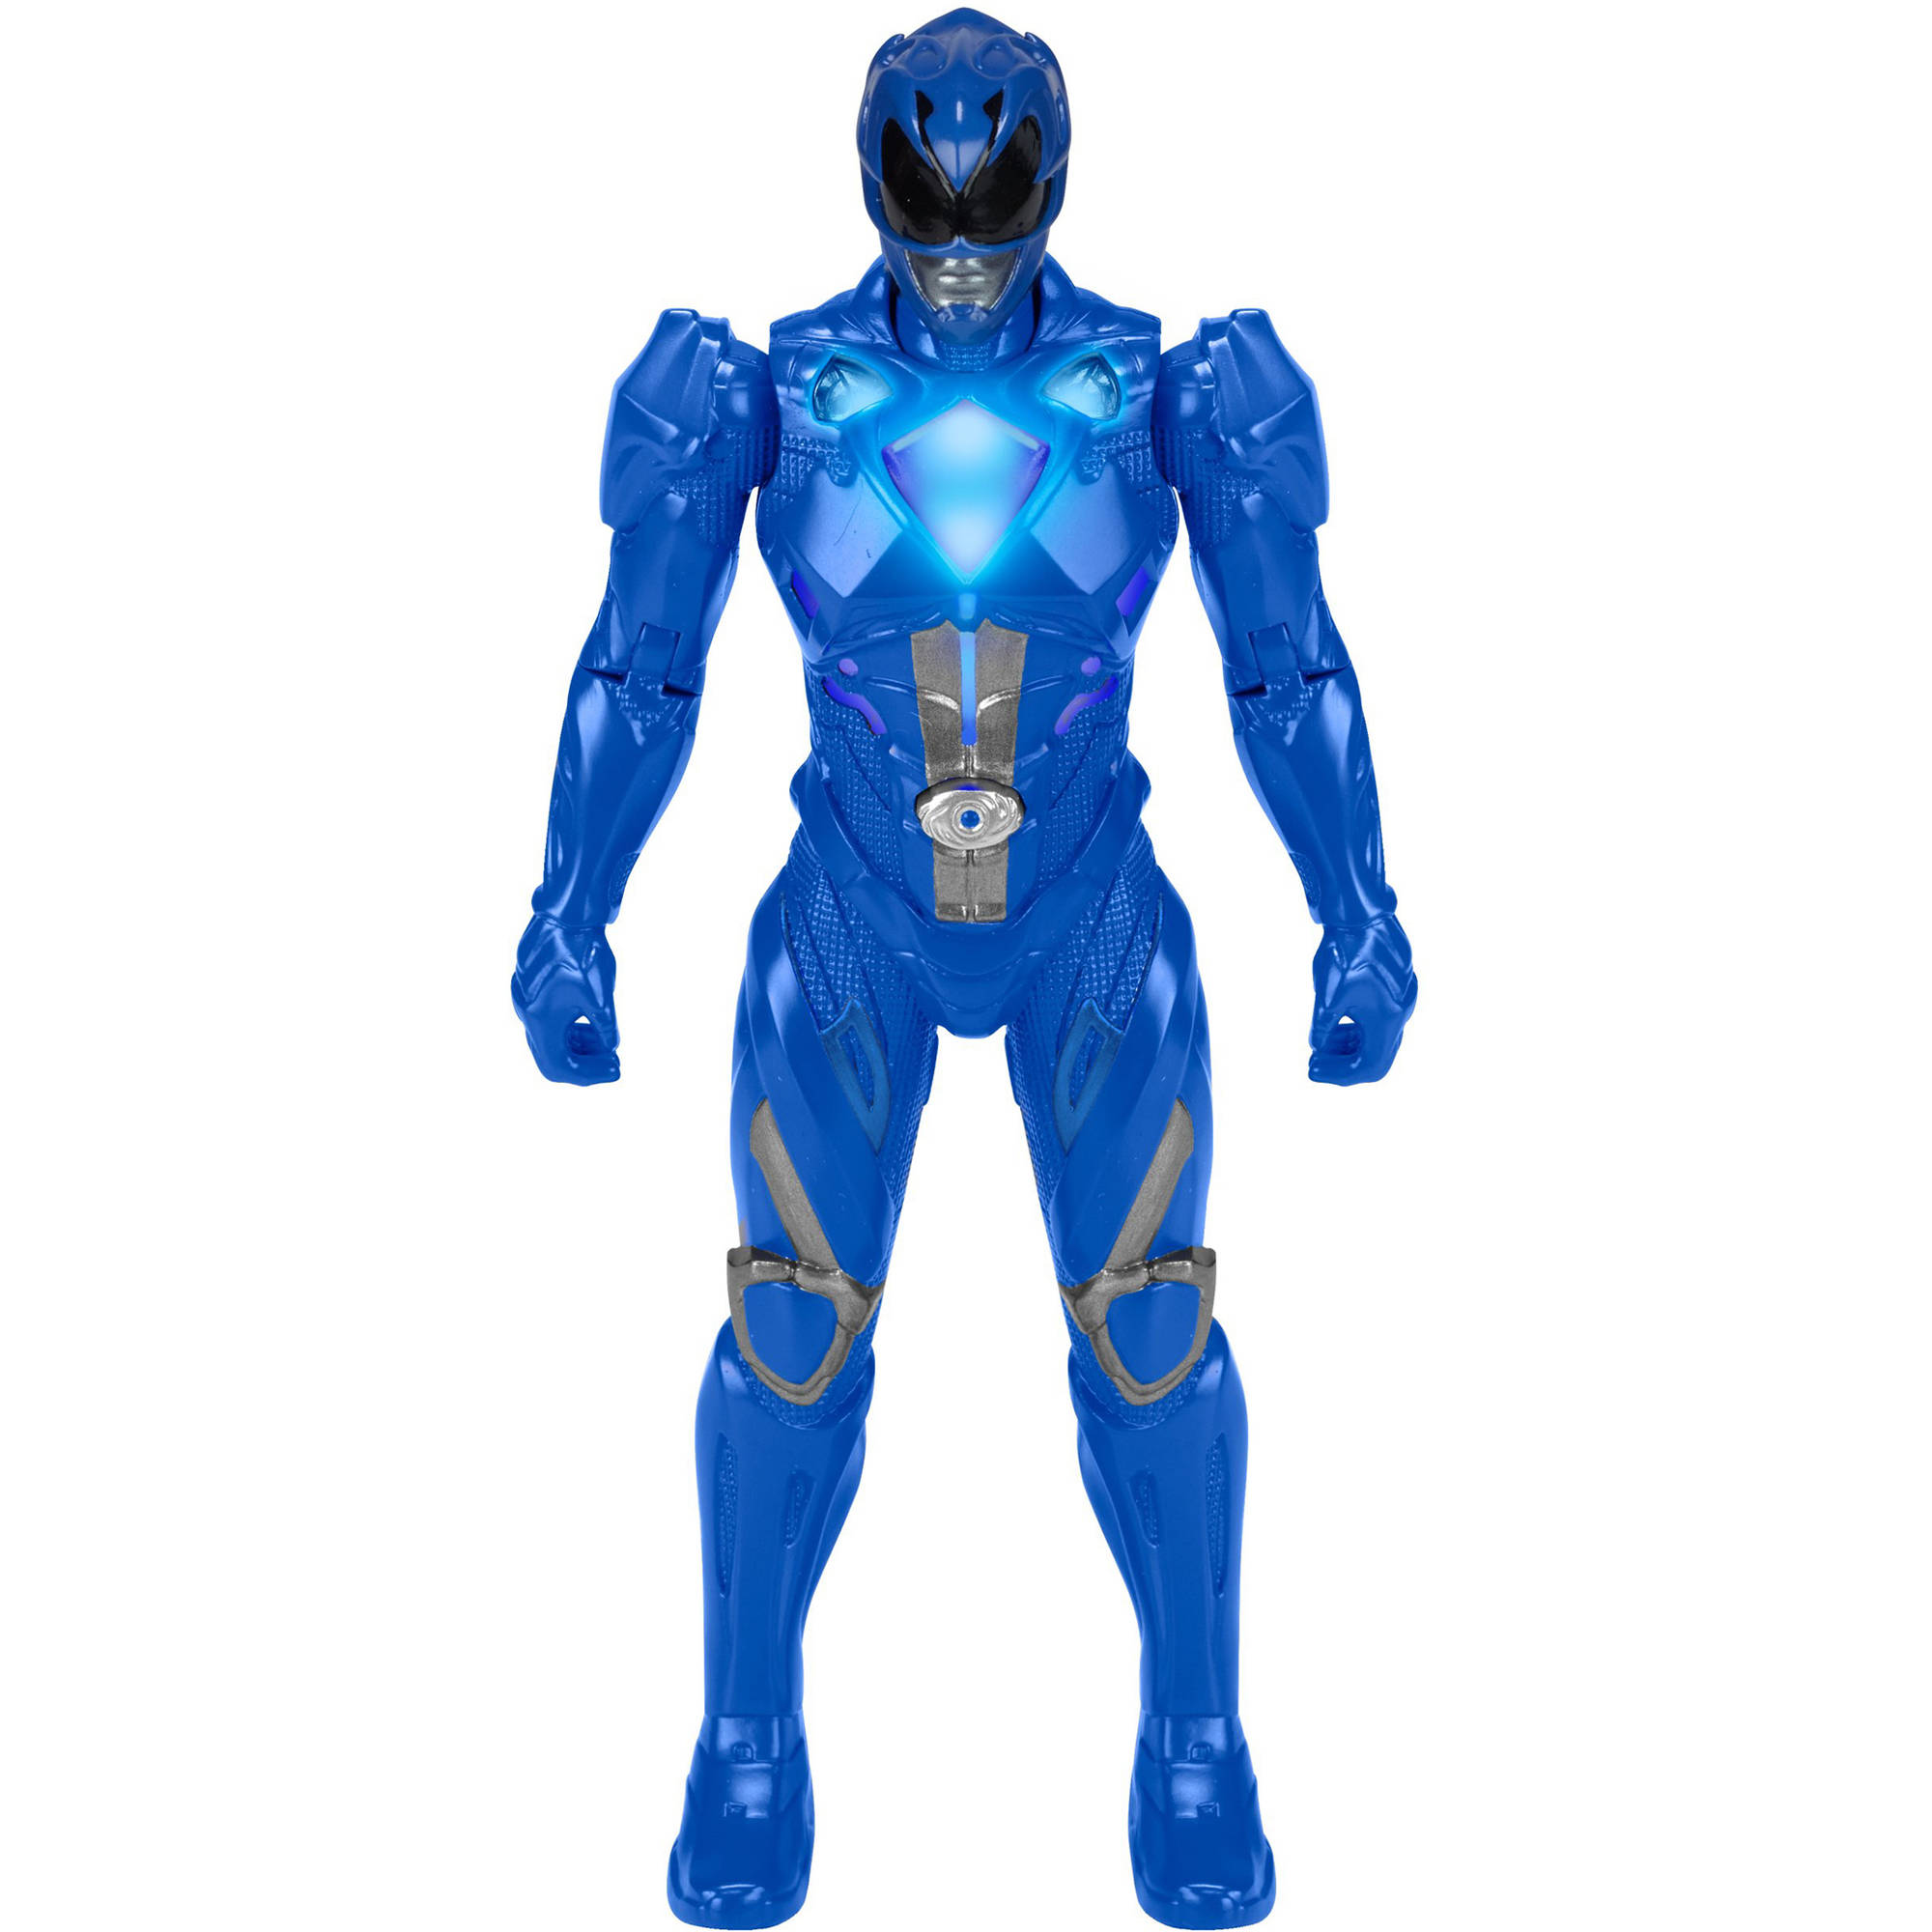 Power Rangers Movie Morphin Grid, Blue Ranger Figure